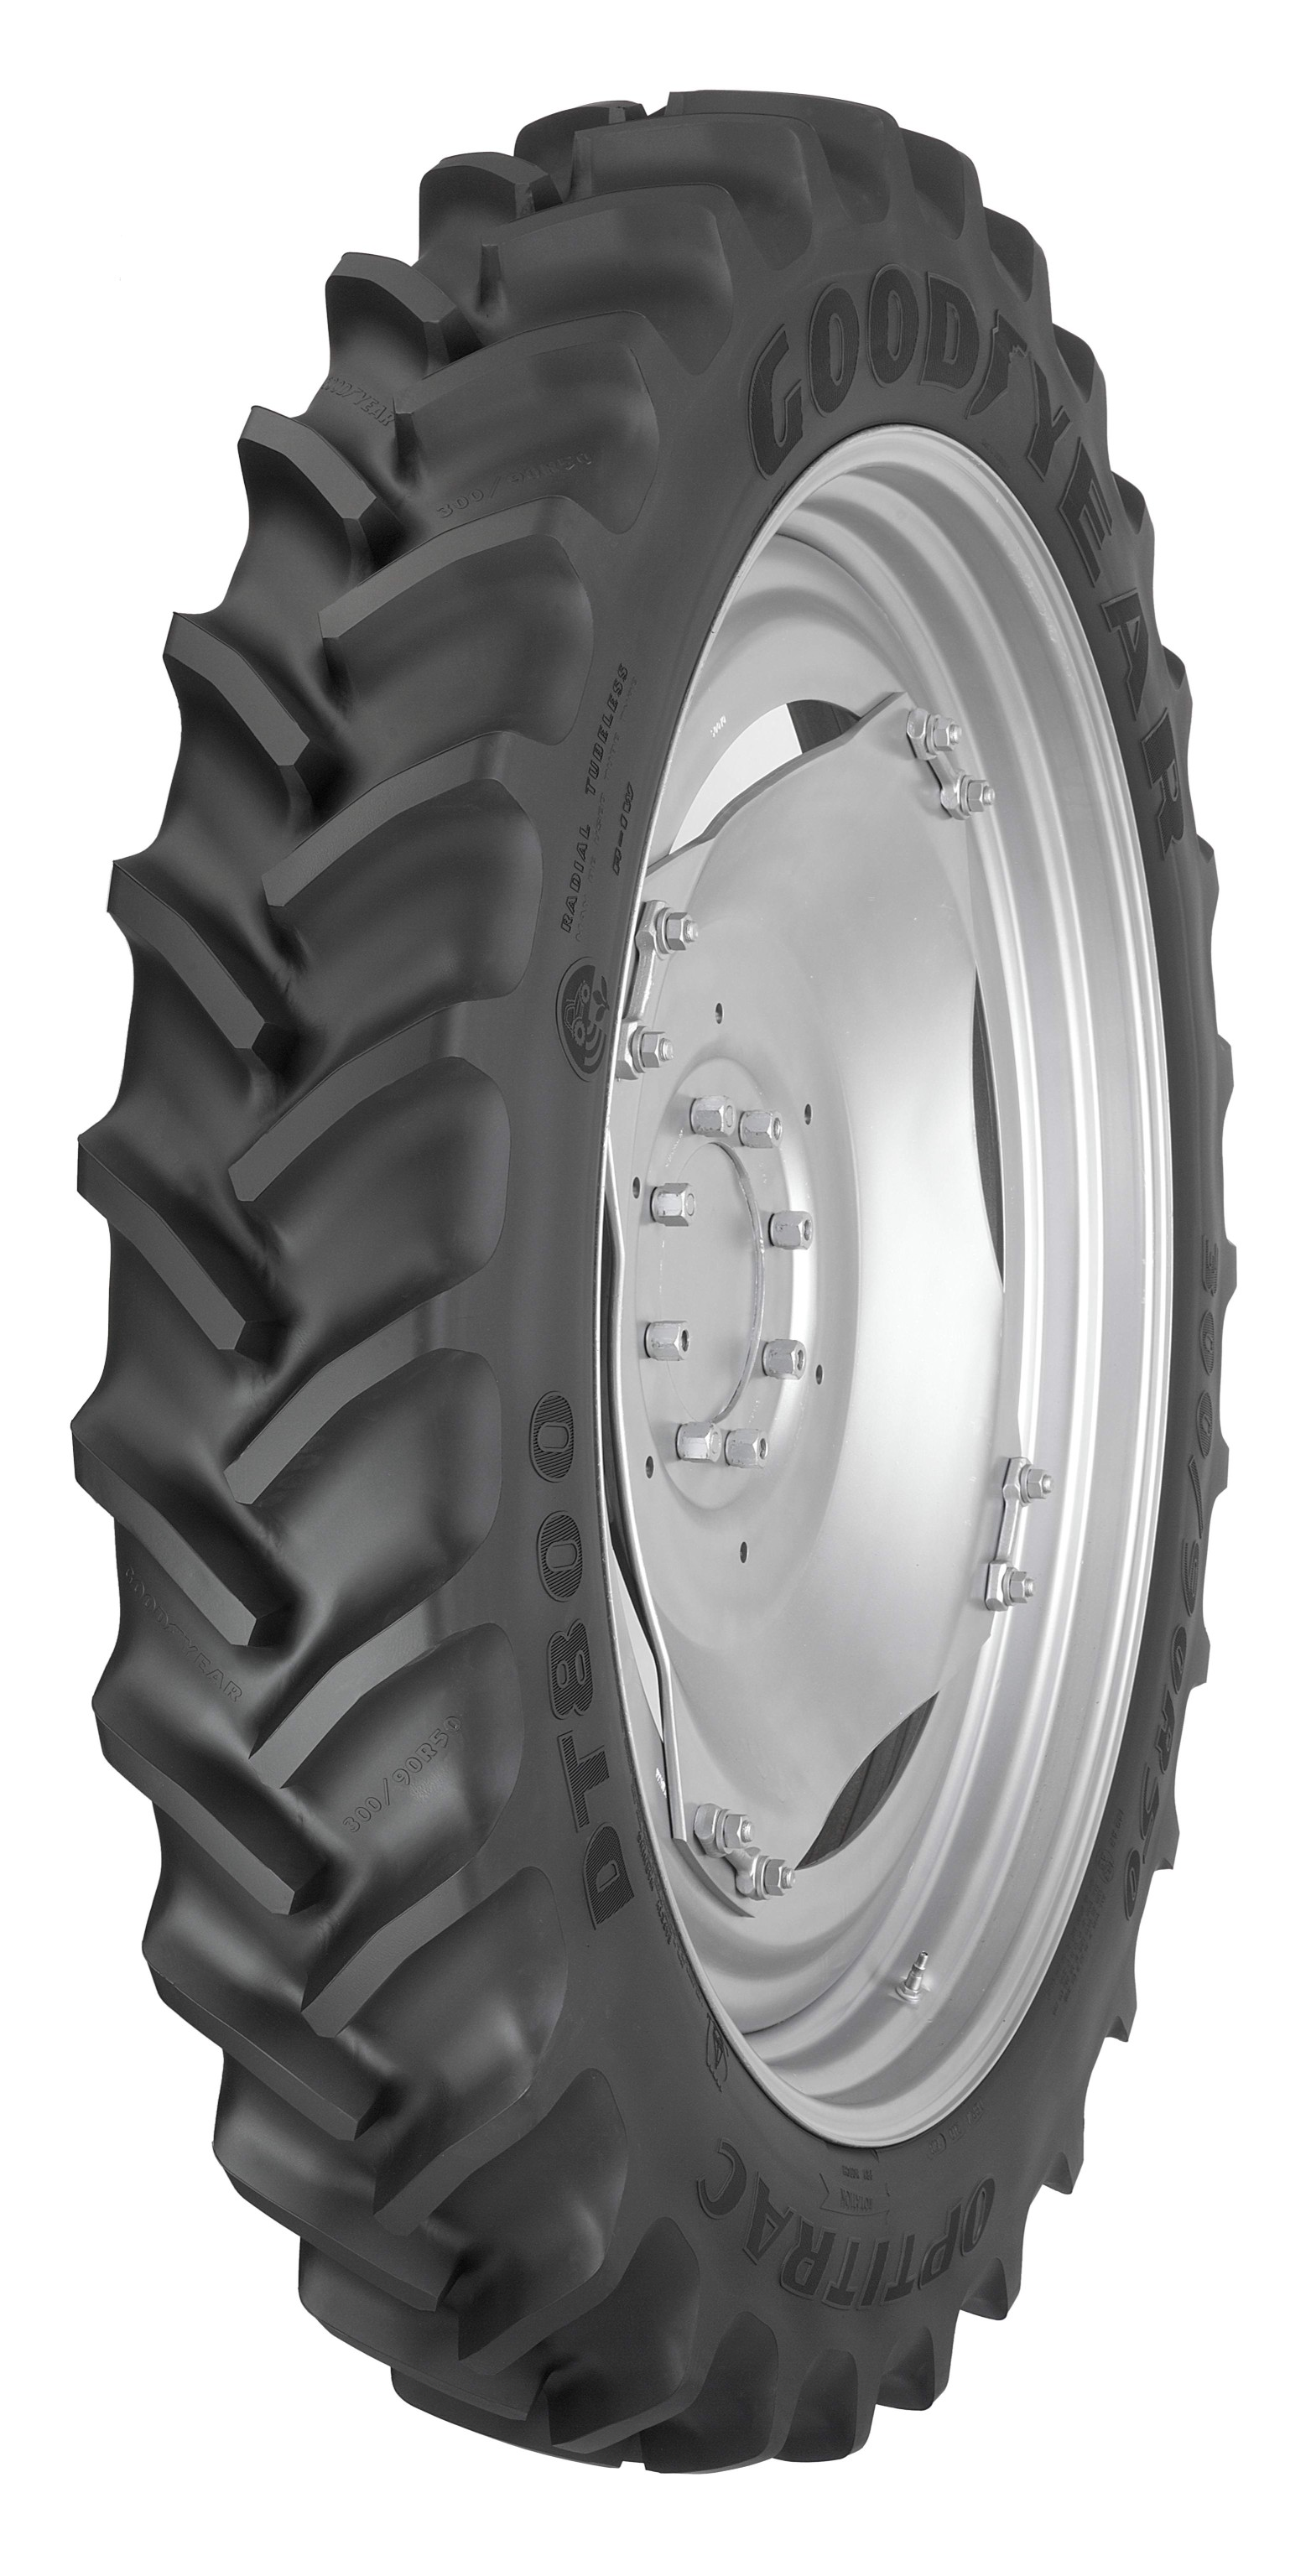 Шина 320/90R54 GOODYEAR Optitrac DT800 R-1W 149A8